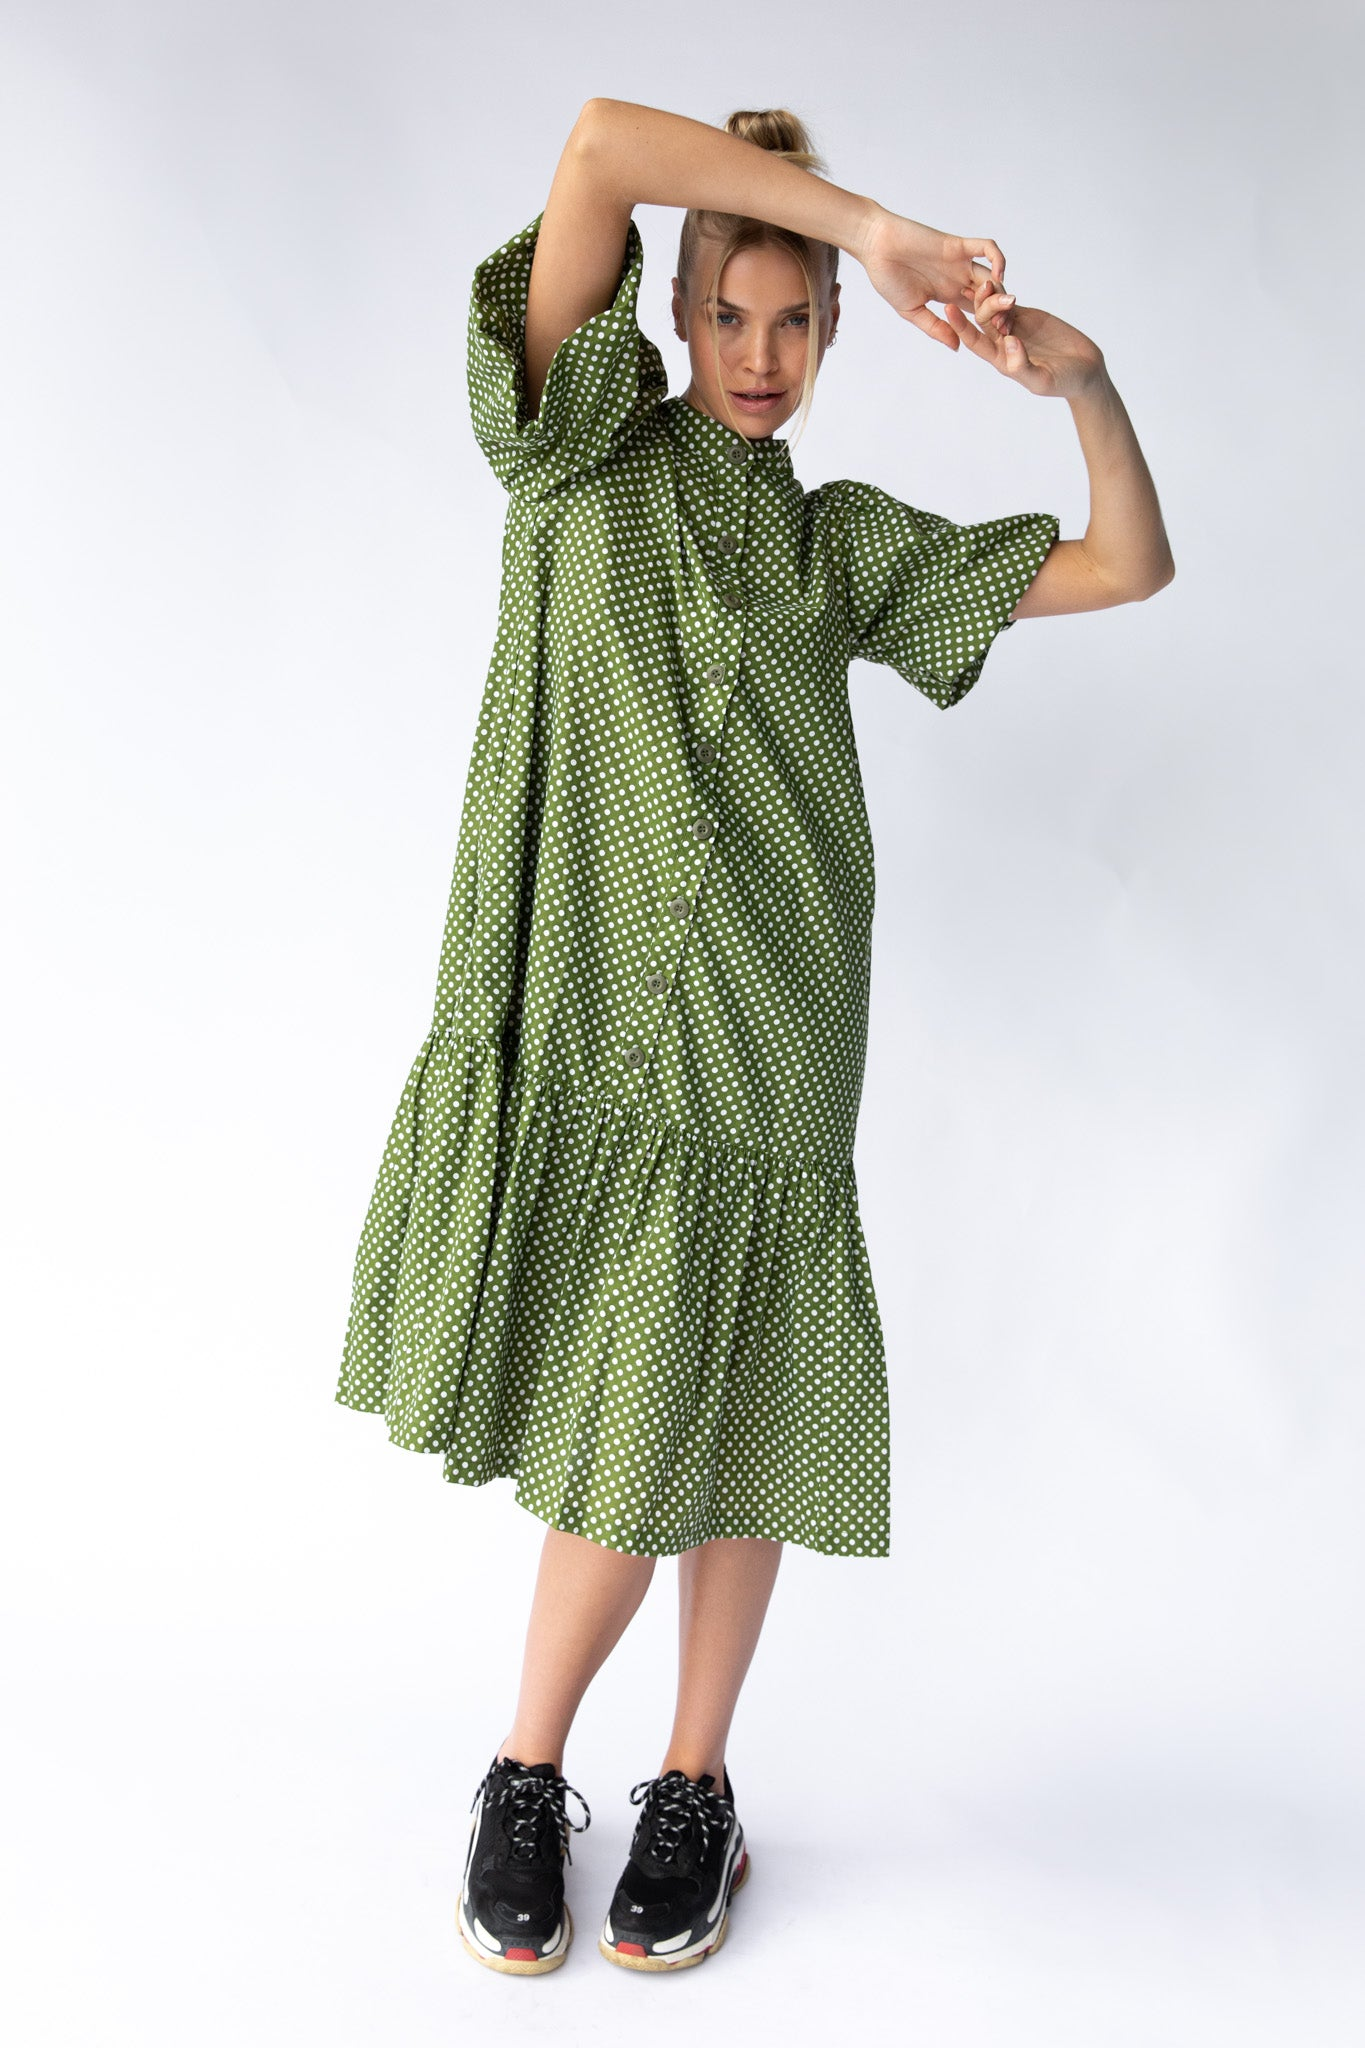 WALDEN DRESS - GREEN POLKA DOT